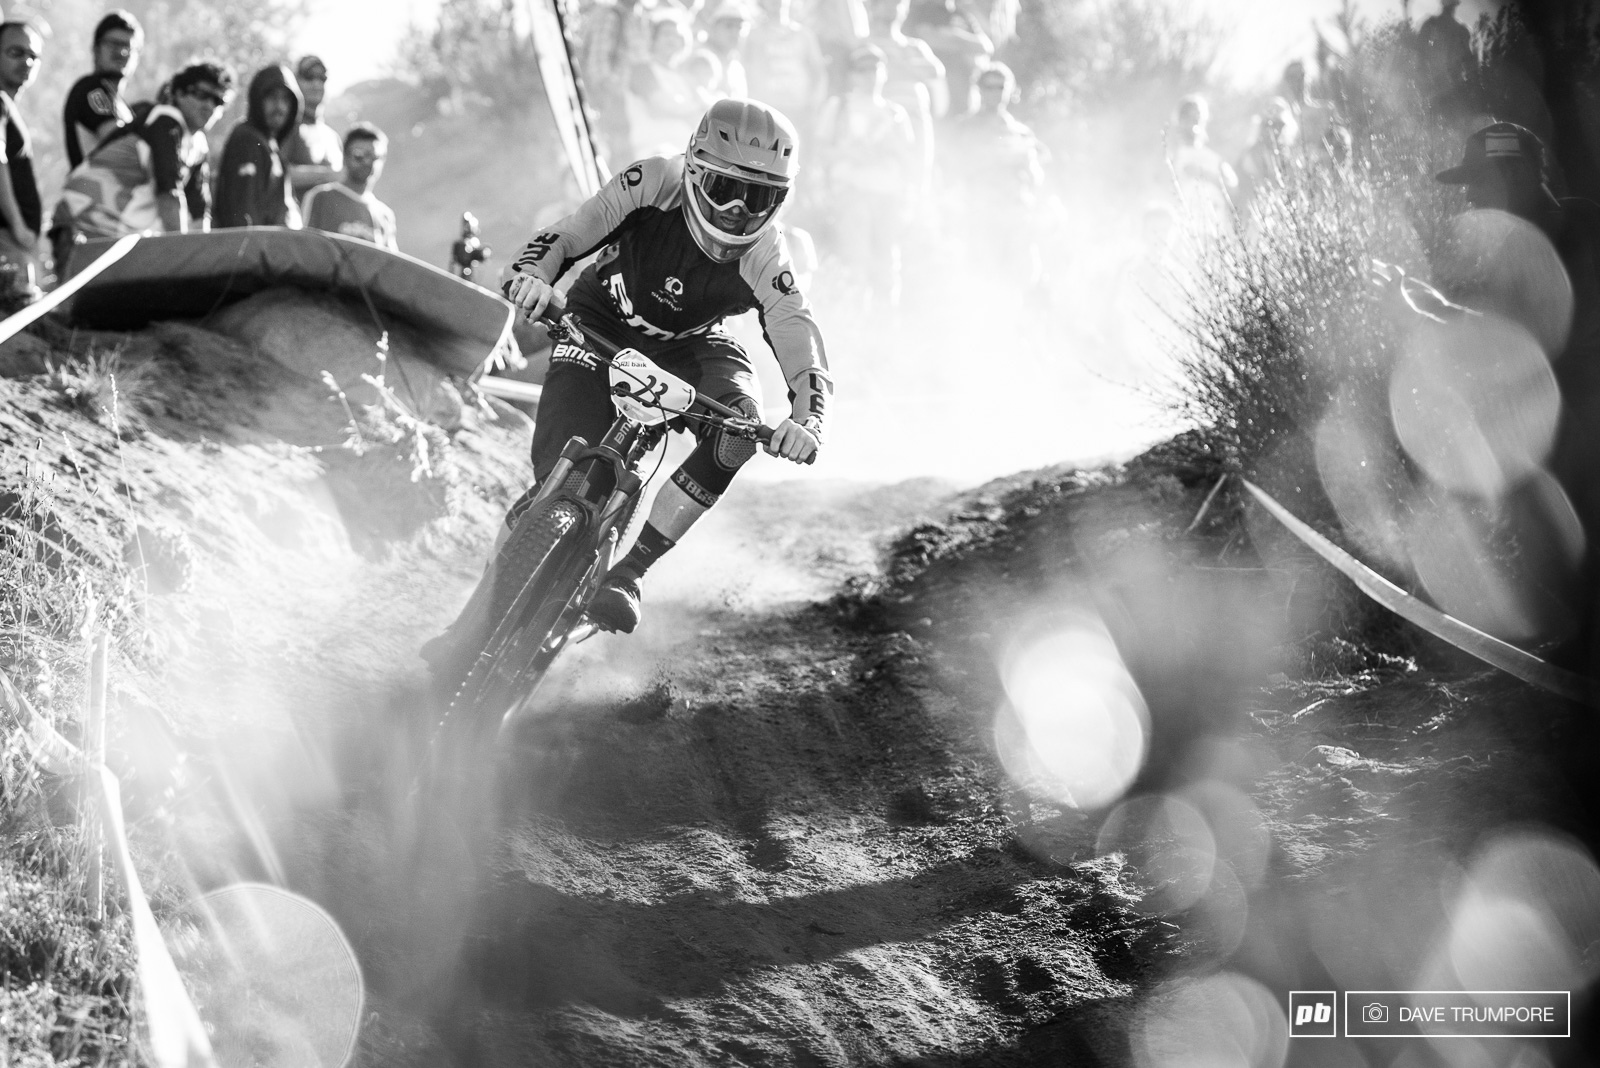 Fully committed and even with a few big crashes Lewis Buchanan improved on his 13th from last weekend to take 7th spot in Bariloche. Keep your eye on this guy as he is quickly making a name for himself amongst the EWS ranks.